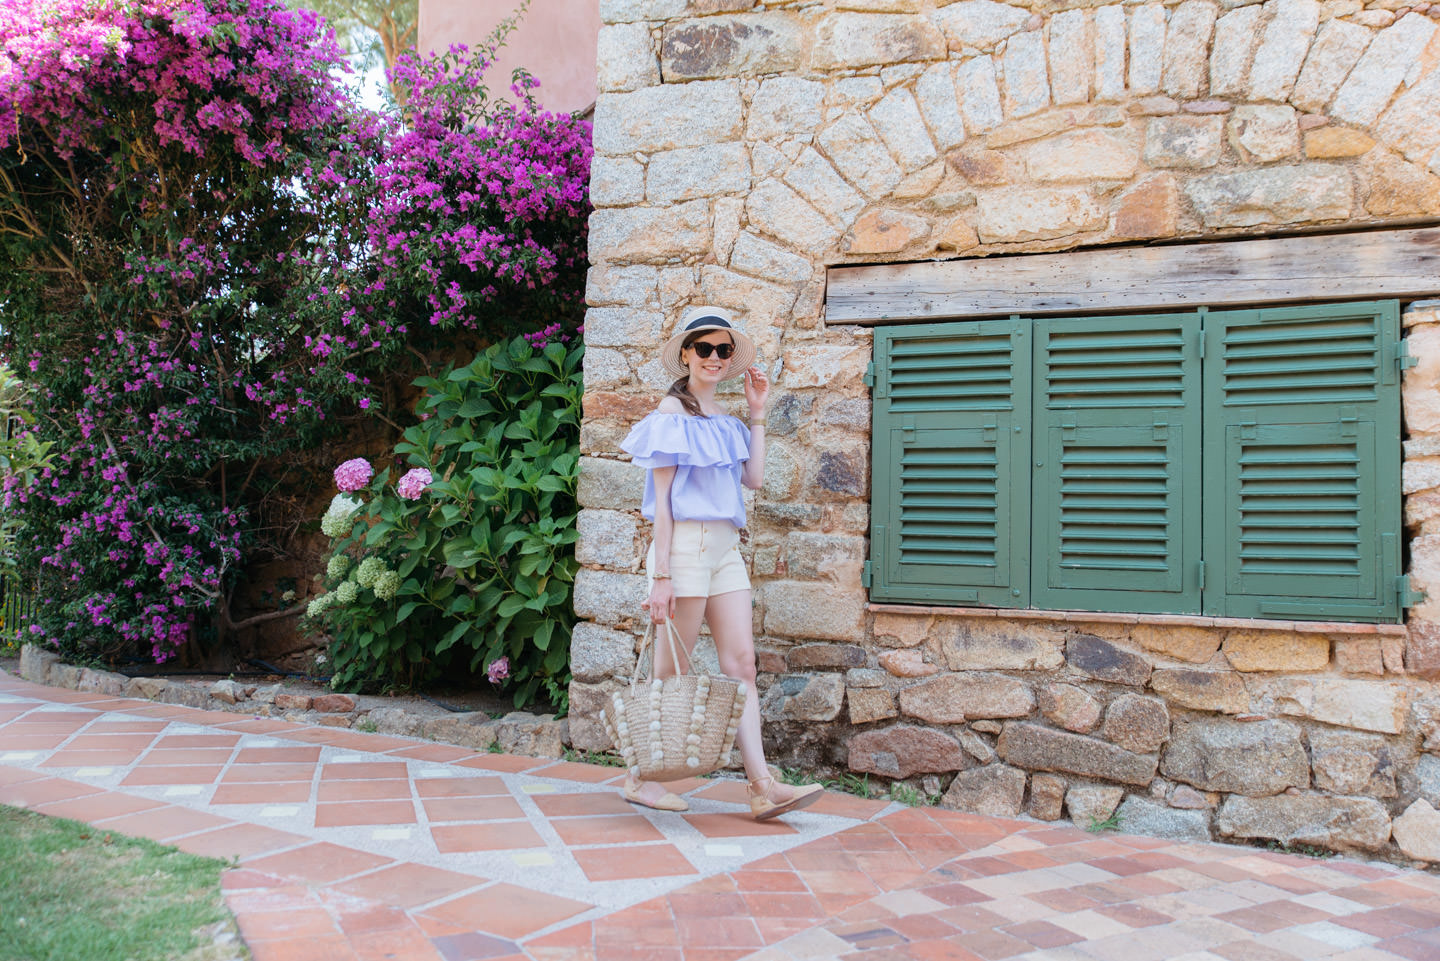 Blog-Mode-And-The-City-Lifestyle-Calvi-on-The-Rocks-avec-Chanel-11